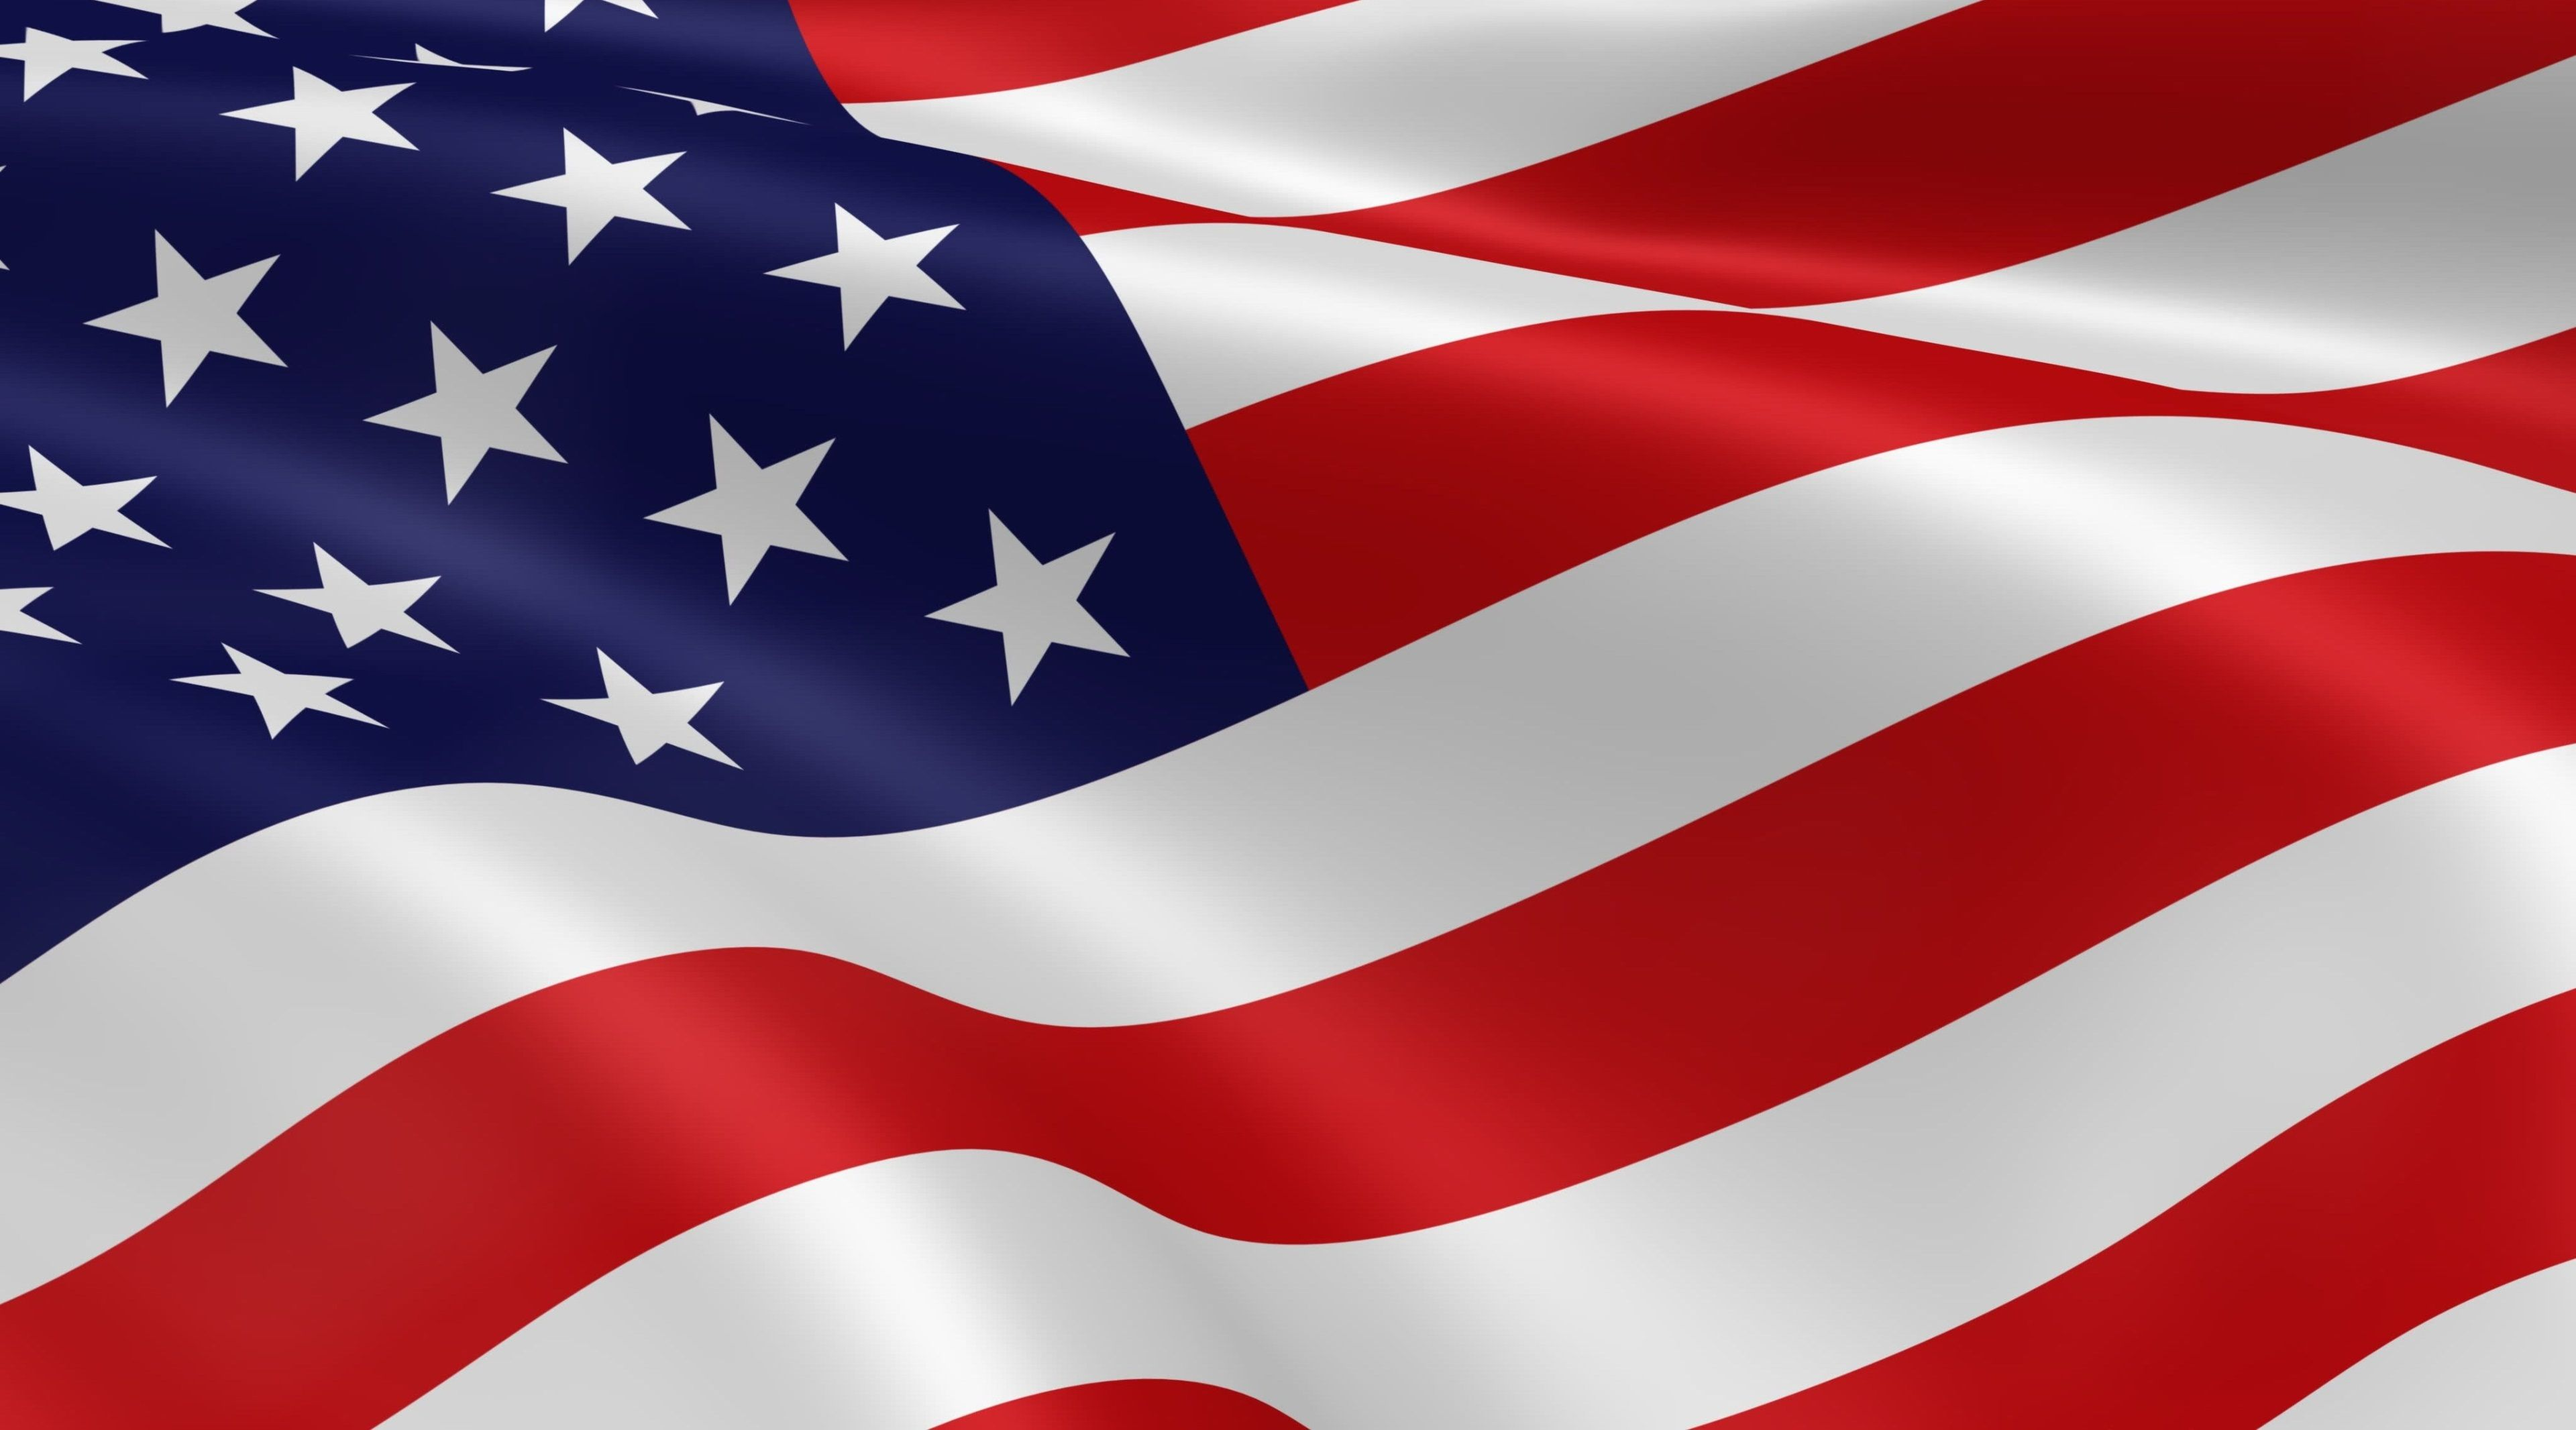 3840x2132 Flag Day 4k Wallpaper Download Pc In 2020 American Flag Wallpaper Usa Flag Wallpaper American Flag Images